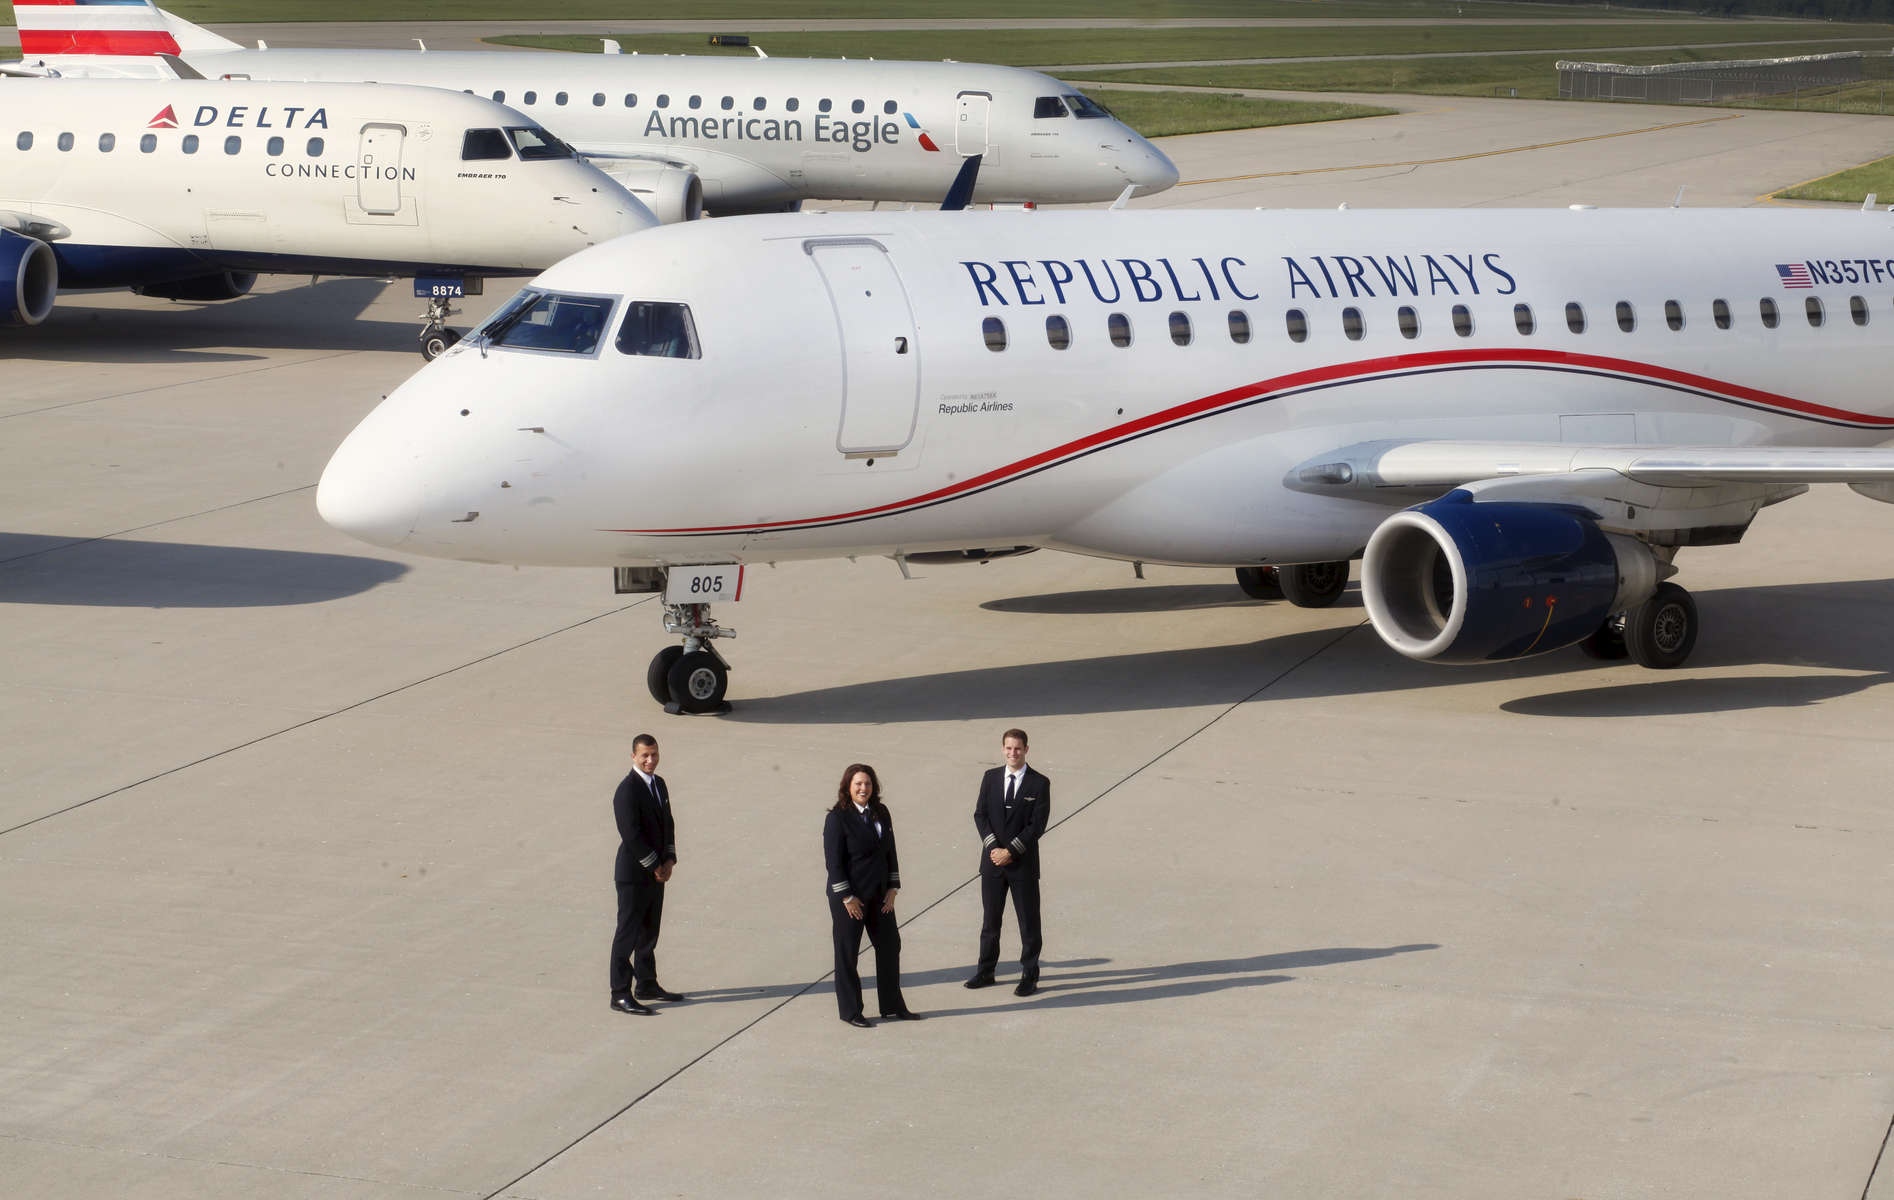 Republic Airways corporate photo.